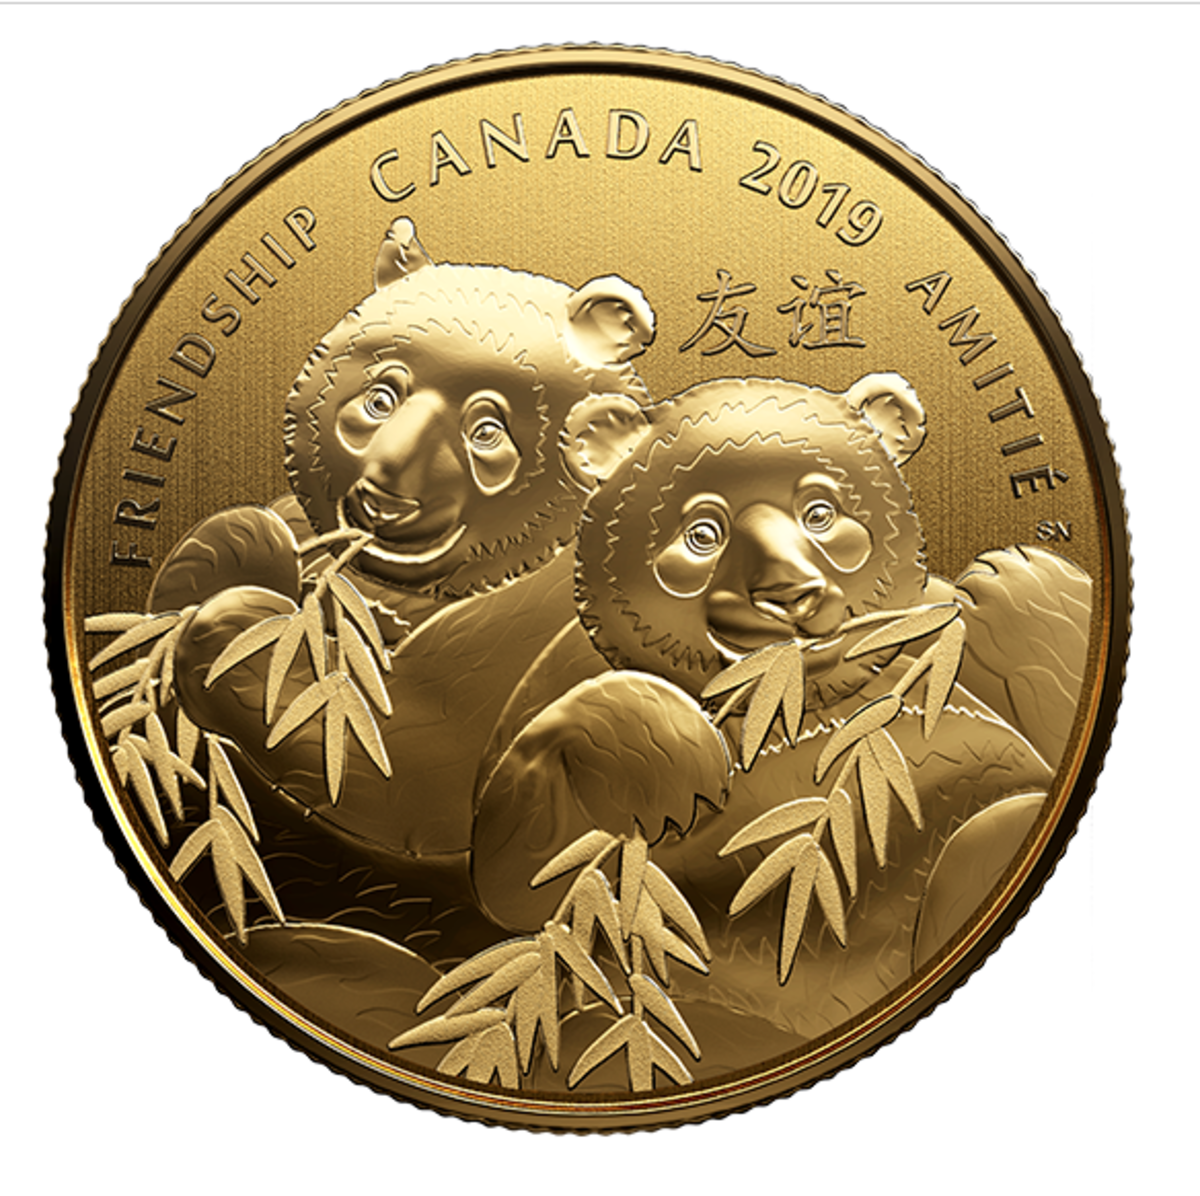 Gift of Friendship Coin. Image courtesy of the Royal Canadian Mint